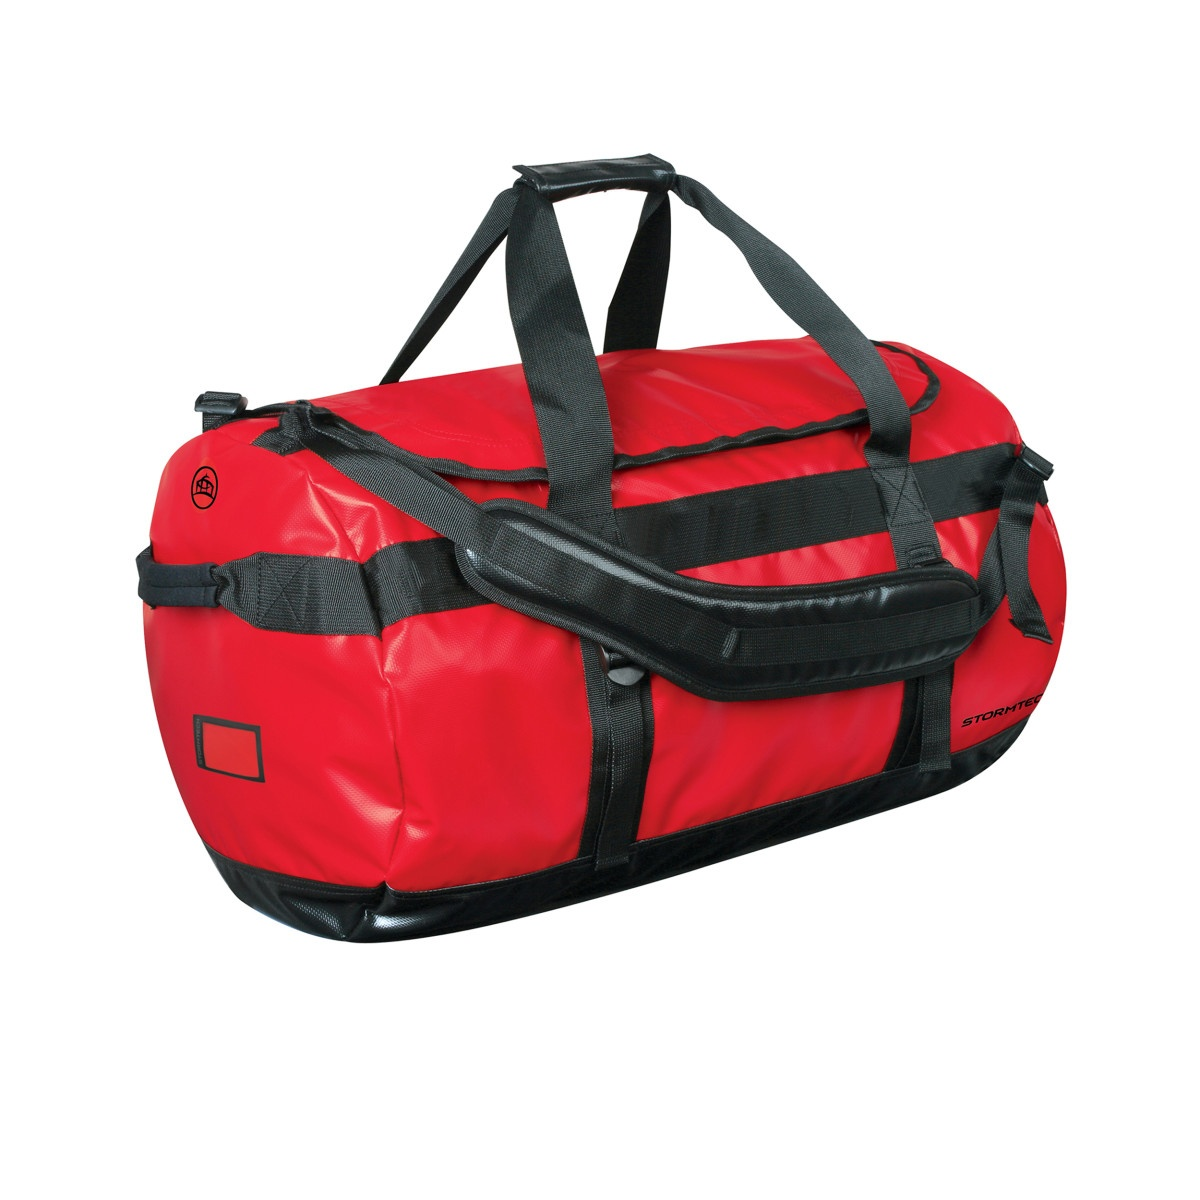 Stormtech Waterproof Gear Holdall Bag (Medium) (Pack of 2) (One Size) (Bold Red/Black)